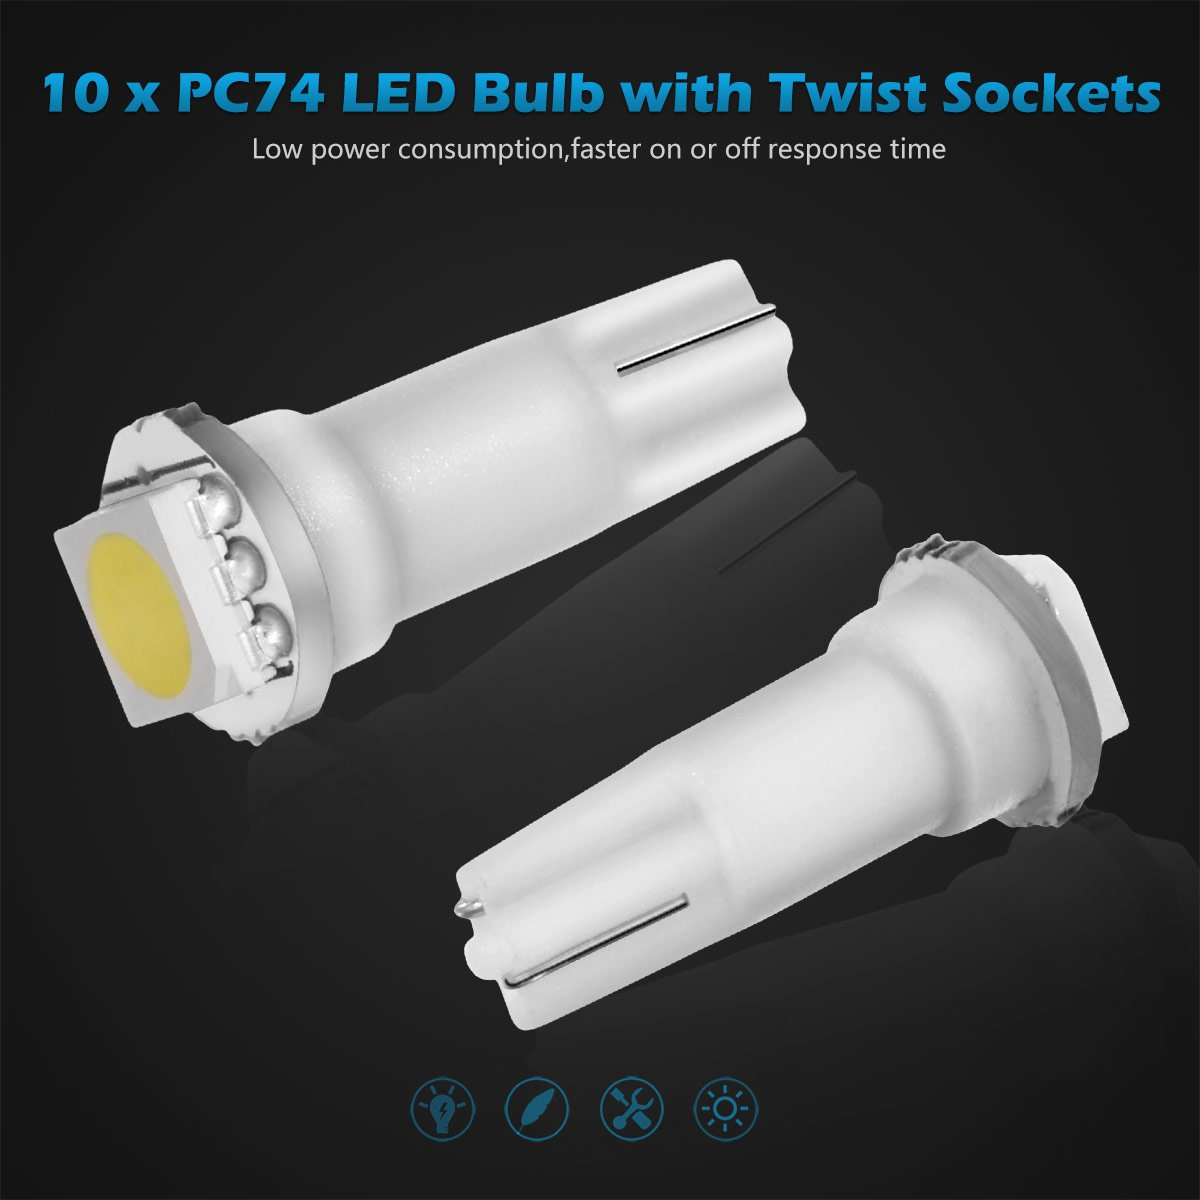 Partsam 10x White Pc74 Twist Socket T5 Wedge 37 70 1 Smd Parts Lamp Sockets Holders With Diode Circuit Board 5050 Led Dashboard Instrument Cluster Light Automotive